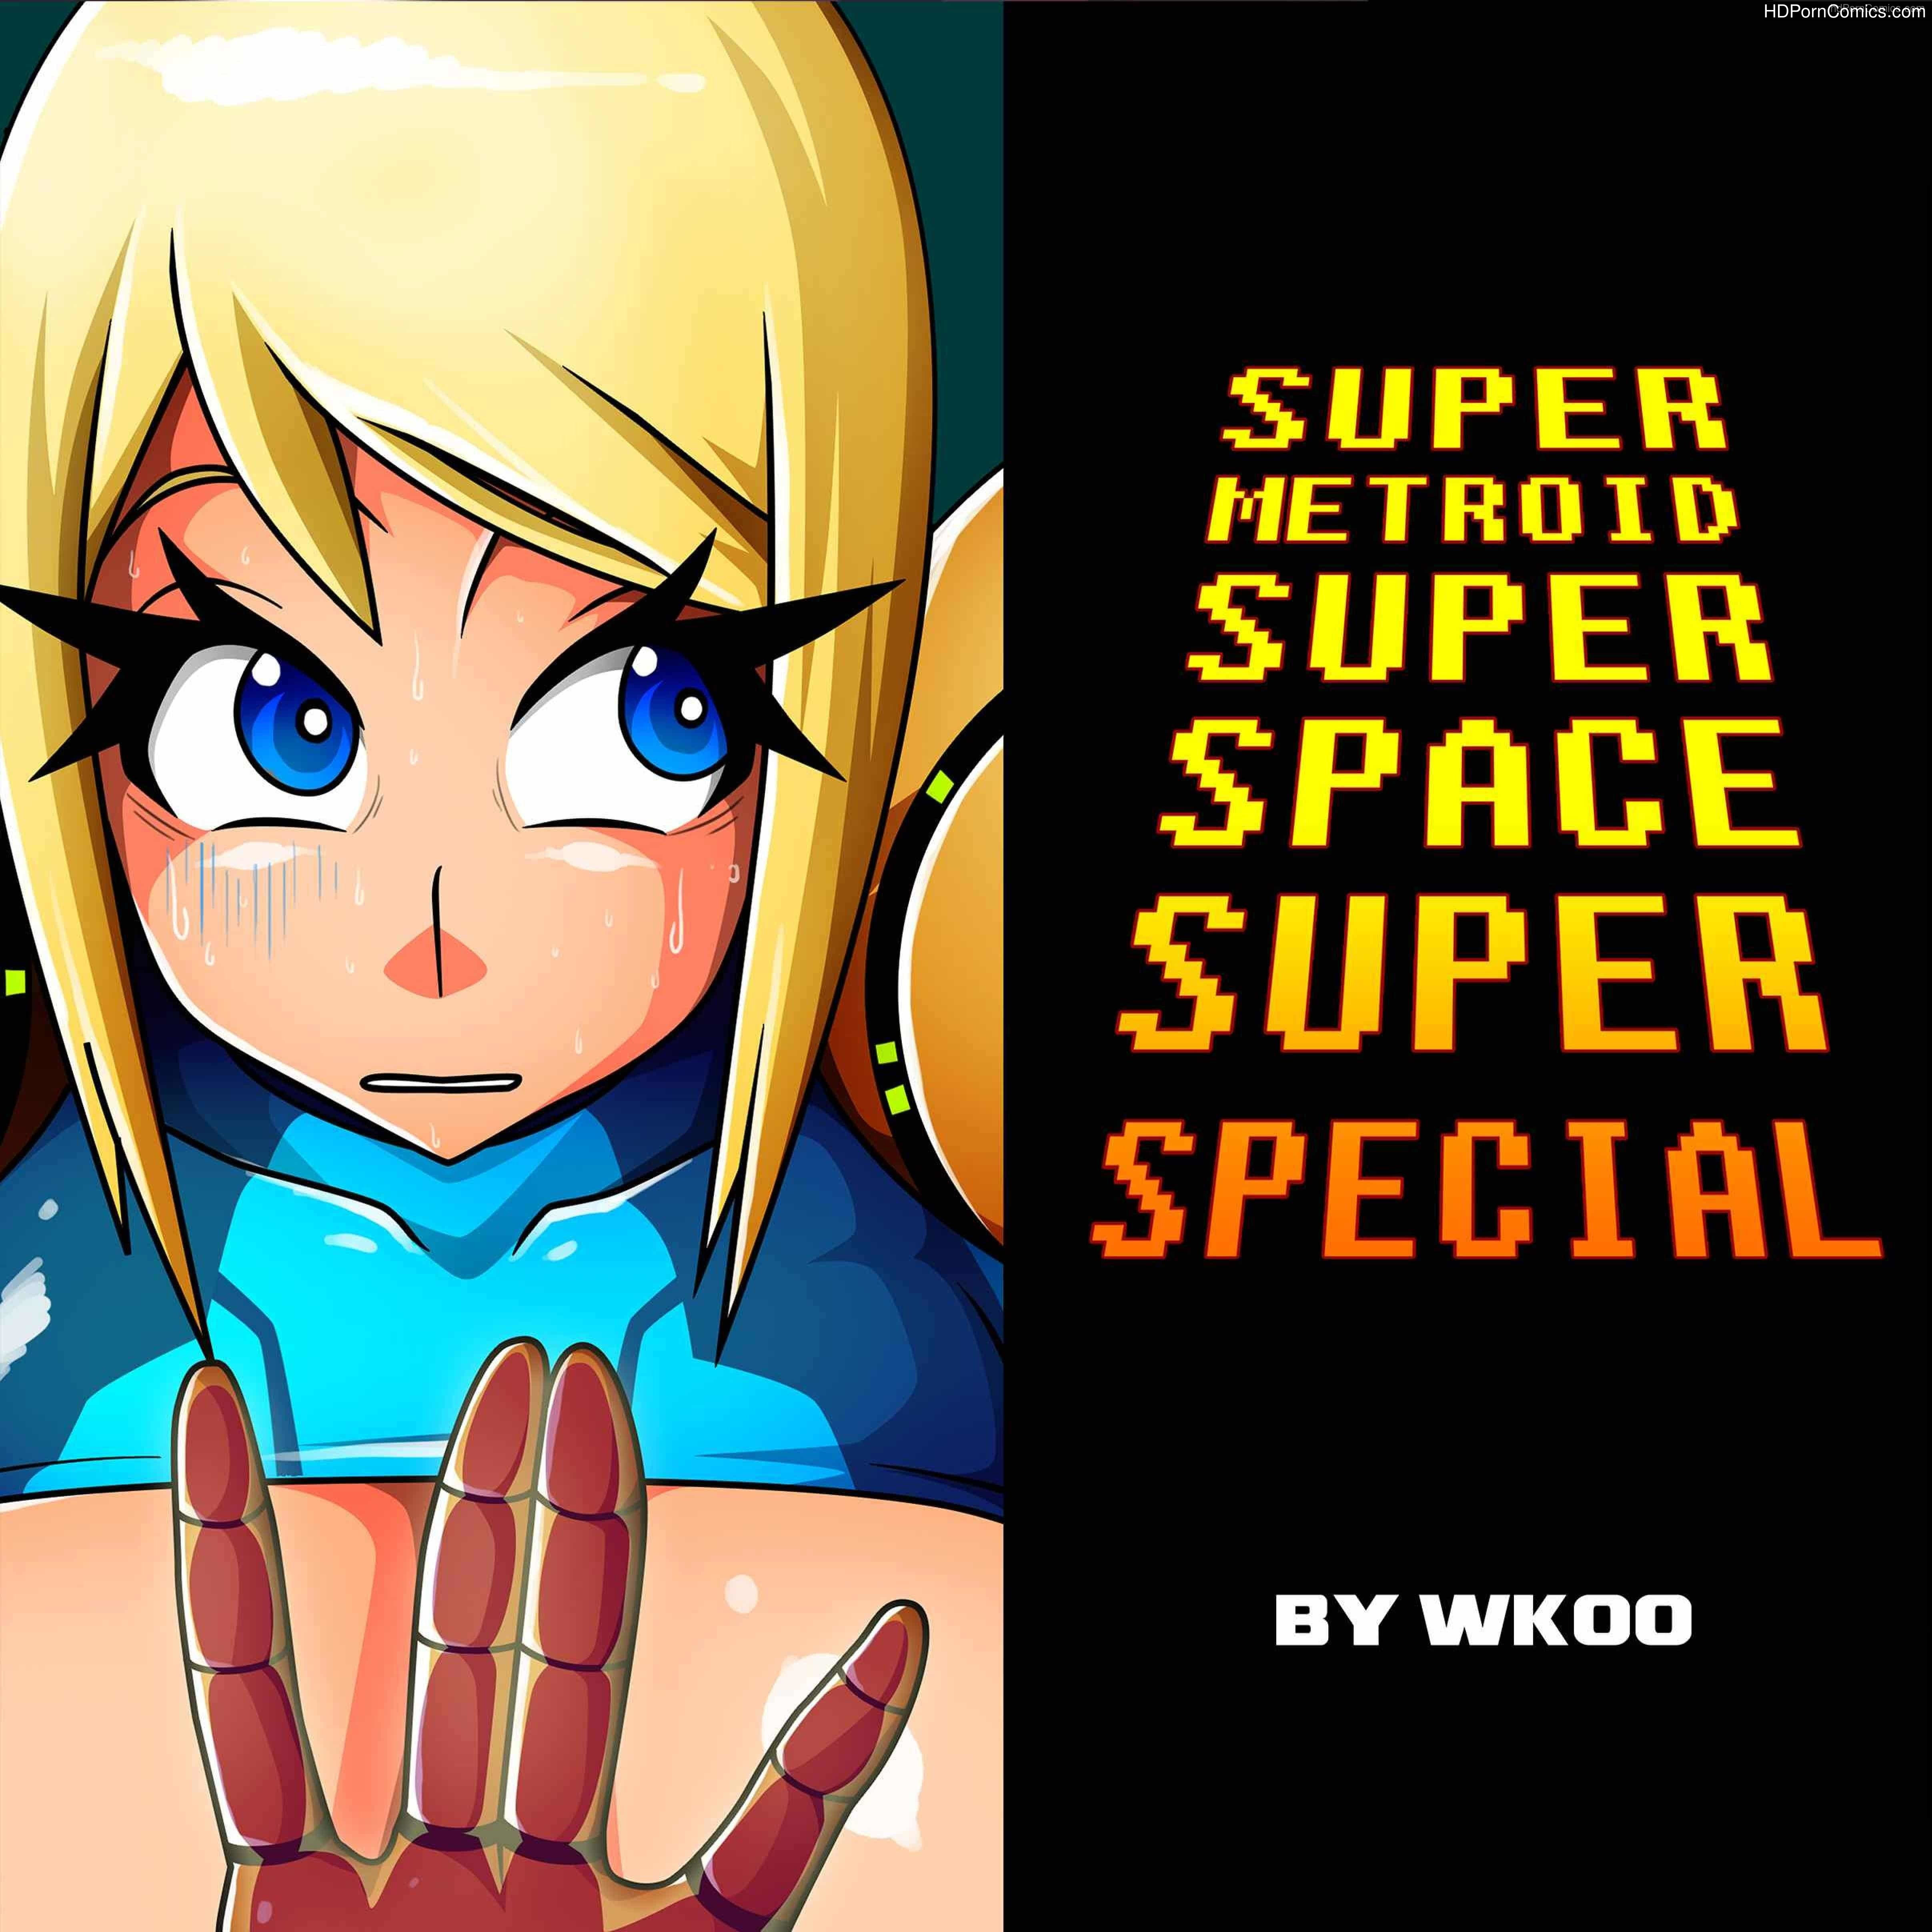 Witchking00 – Super Metroid Super Space Super Special free Cartoon Porn Comic